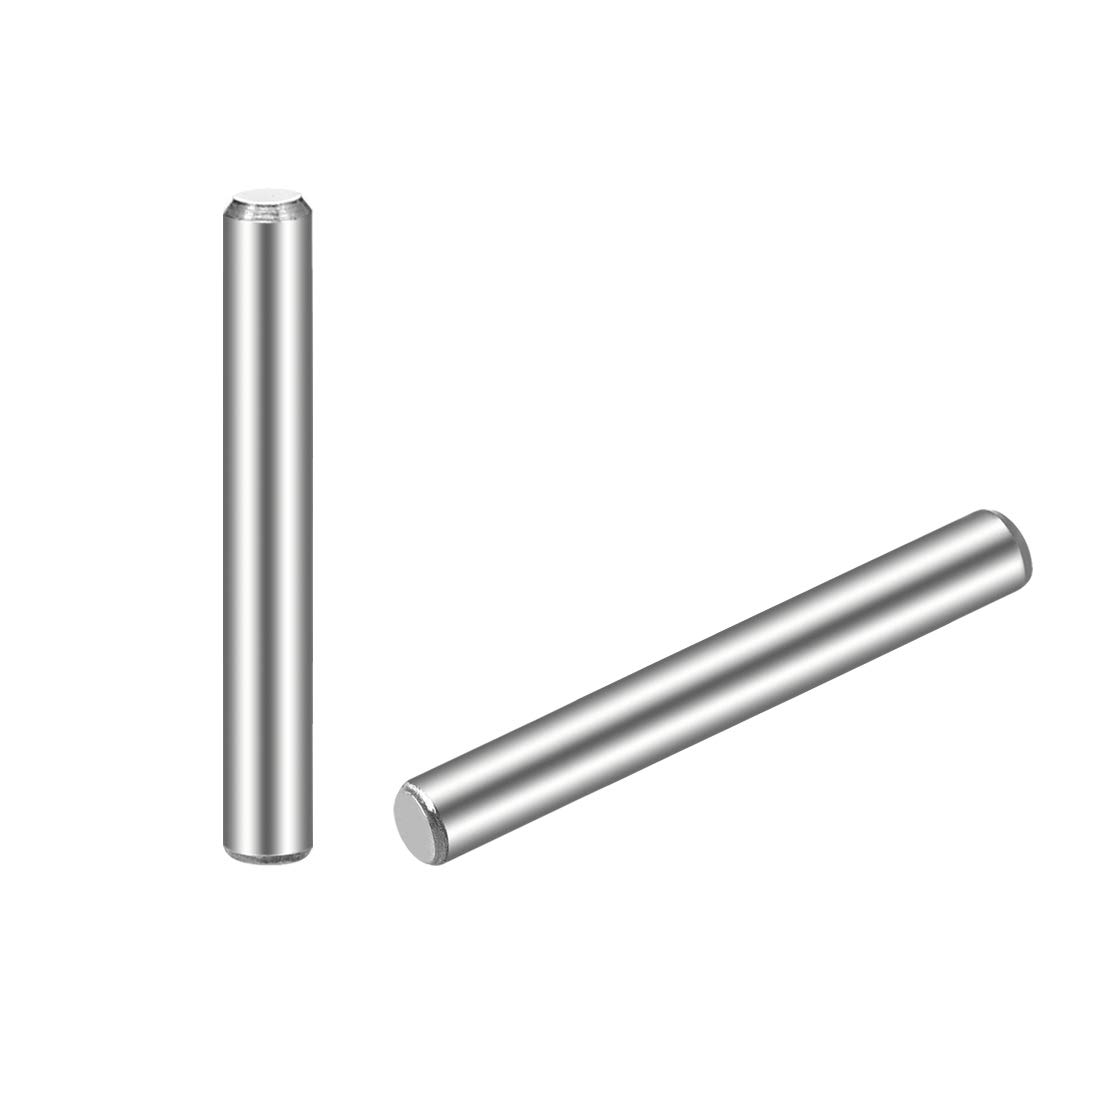 """uxcell 3 x 25mm(Approx 1/8"""") Dowel Pin 304 Stainless Steel Wood Bunk Bed Dowel Pins Shelf Pegs Support Shelves 25Pcs"""